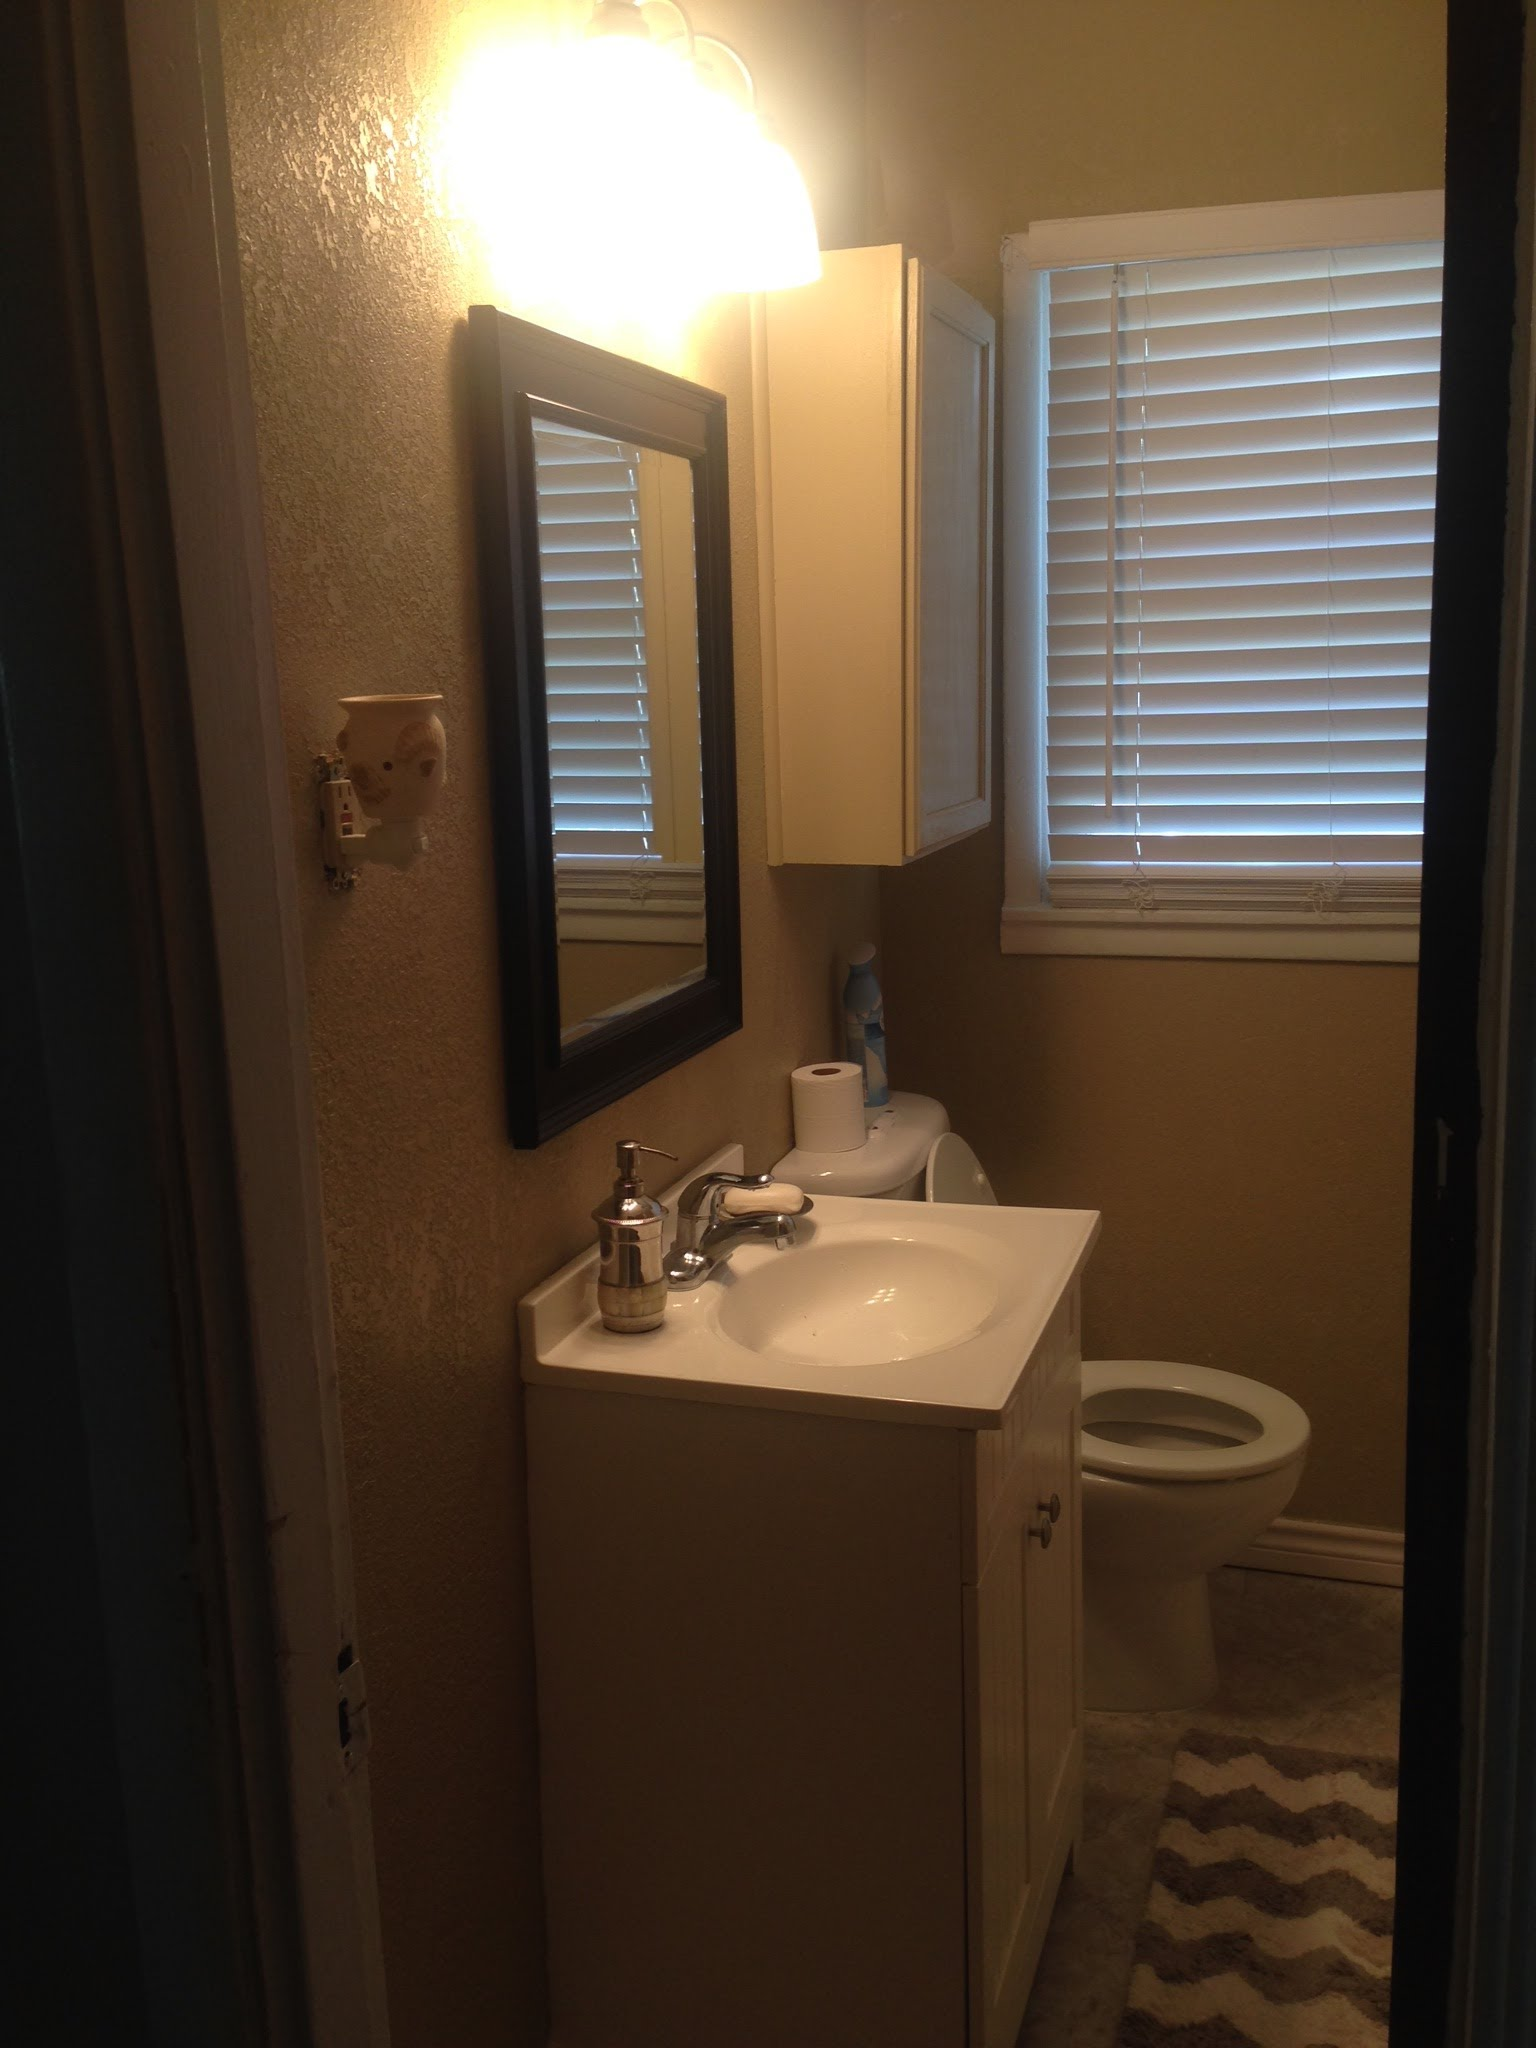 small bathroom makeover small bathroom makeover (must see) - youtube IPGVCHB